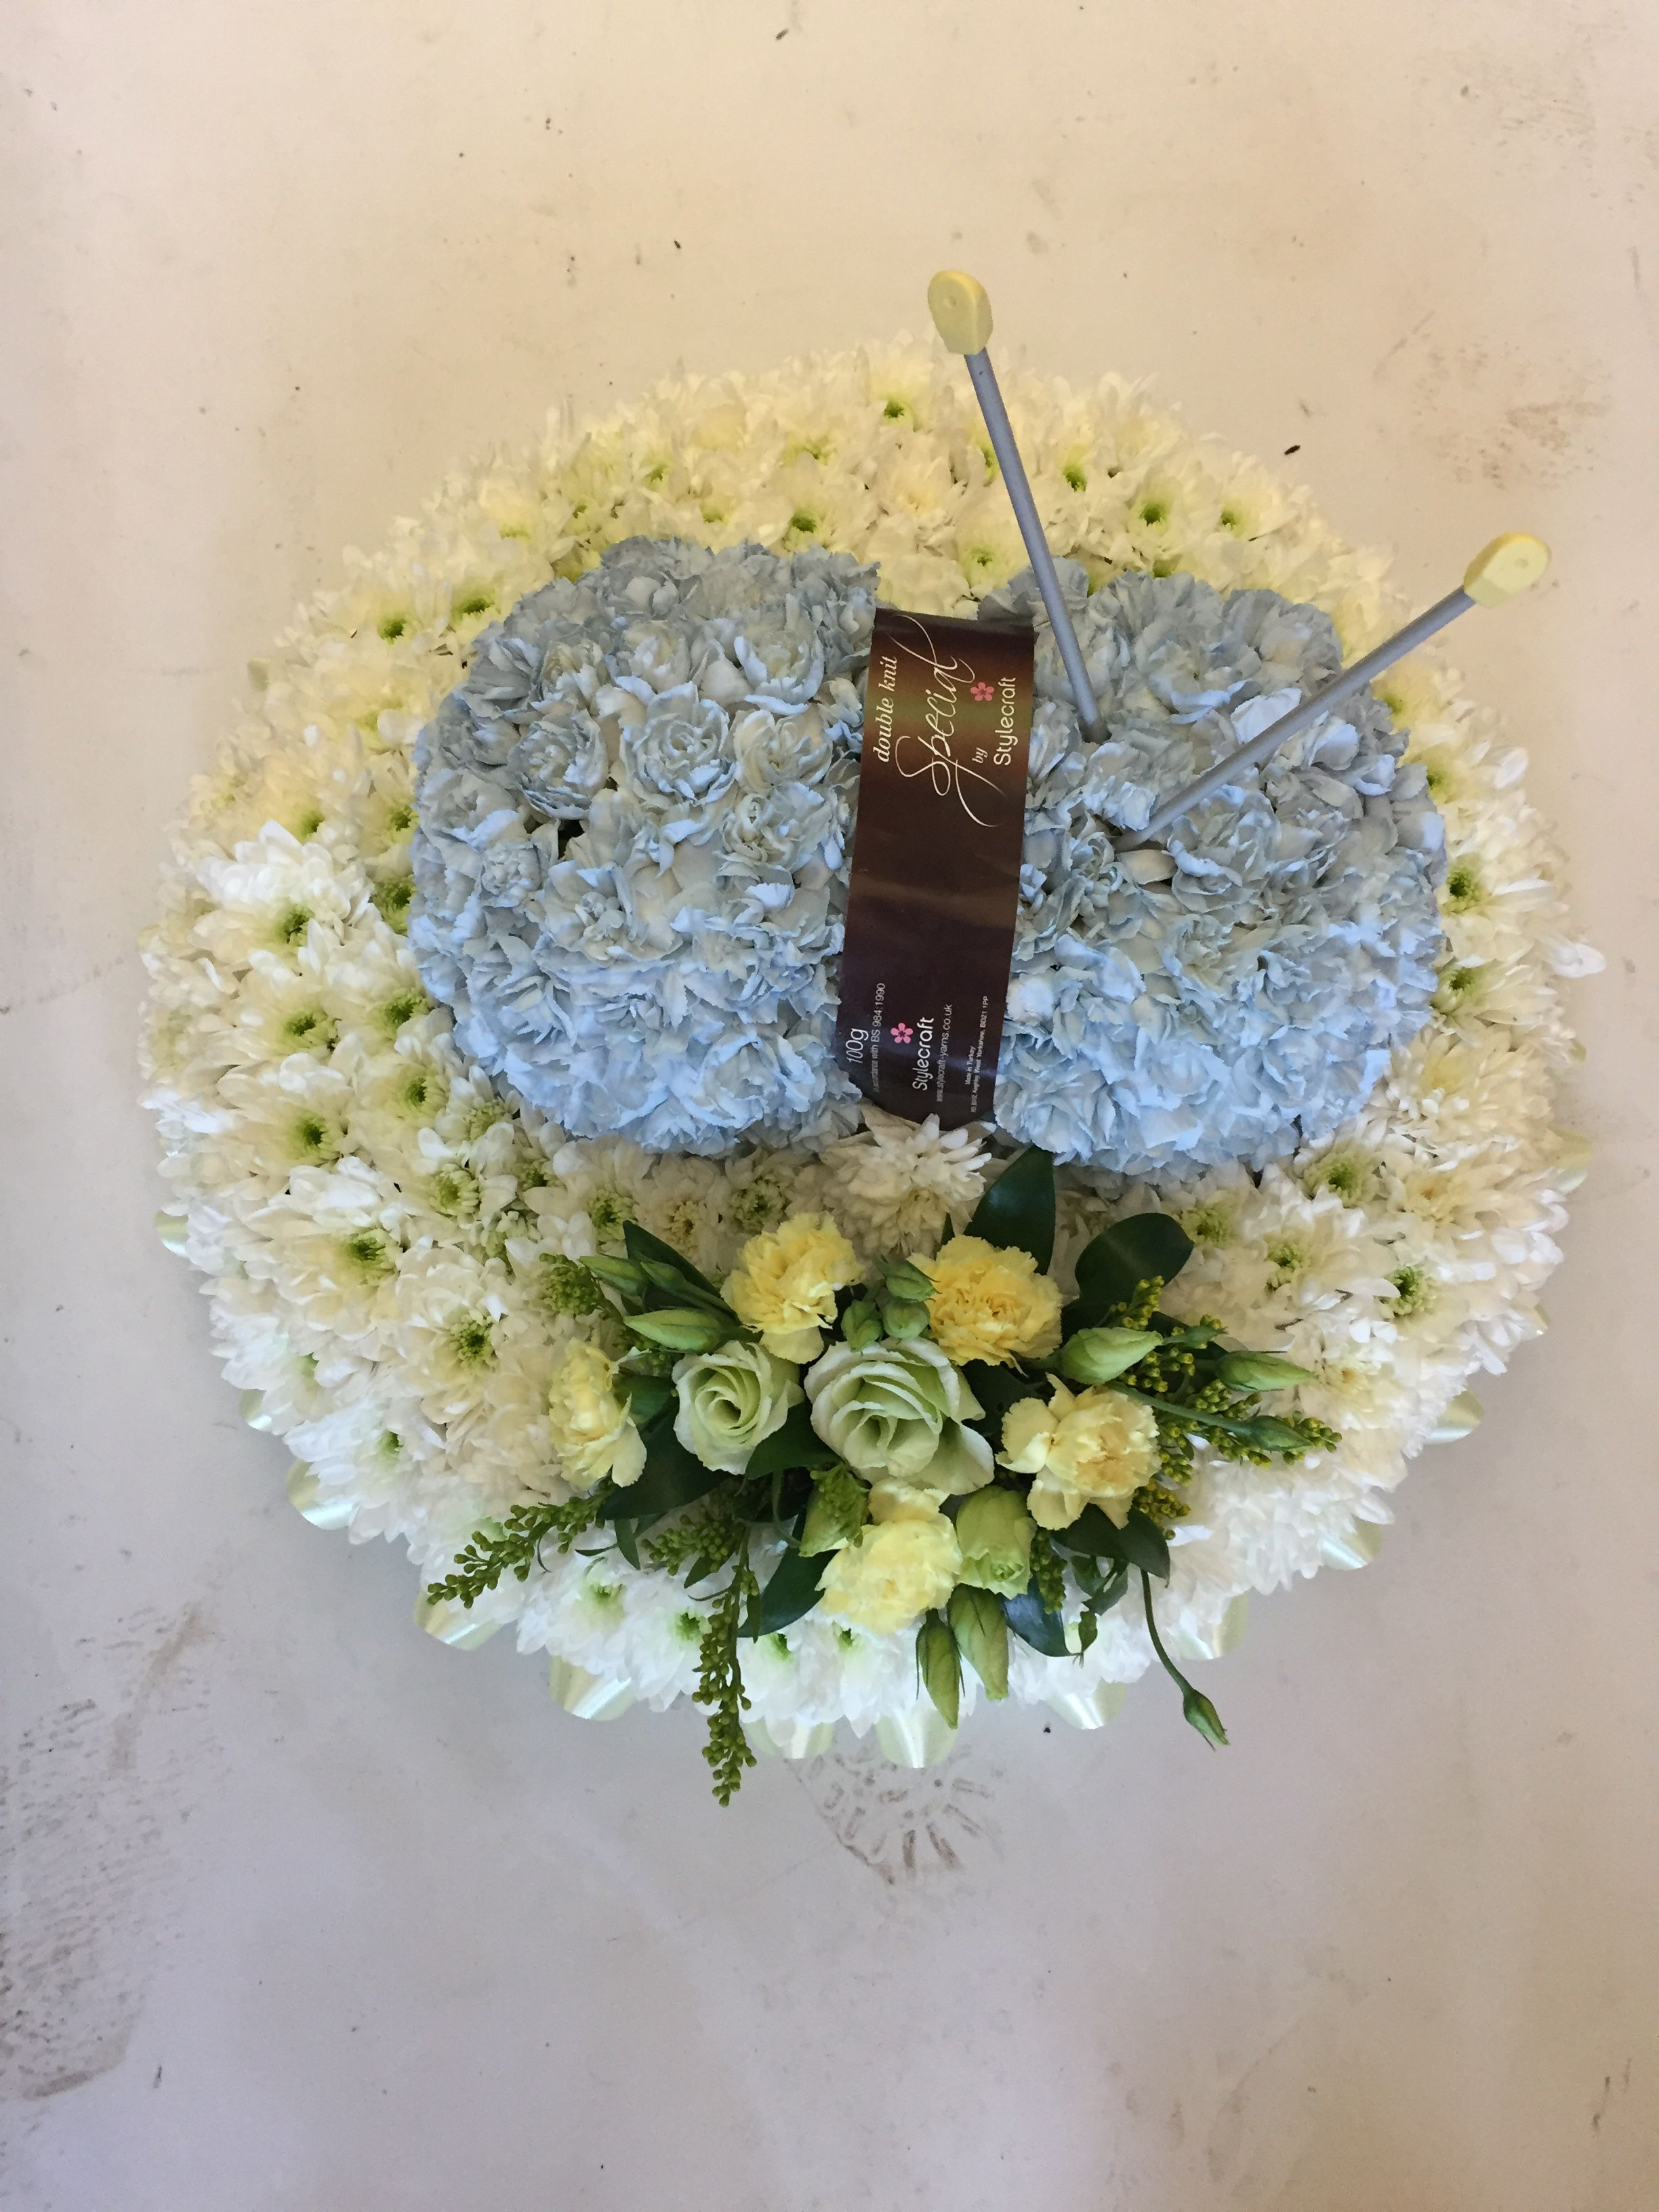 Knitting needles and a ball of wool as funeral flowers beautiful knitting needles and a ball of wool as funeral flowers beautiful tribute izmirmasajfo Choice Image